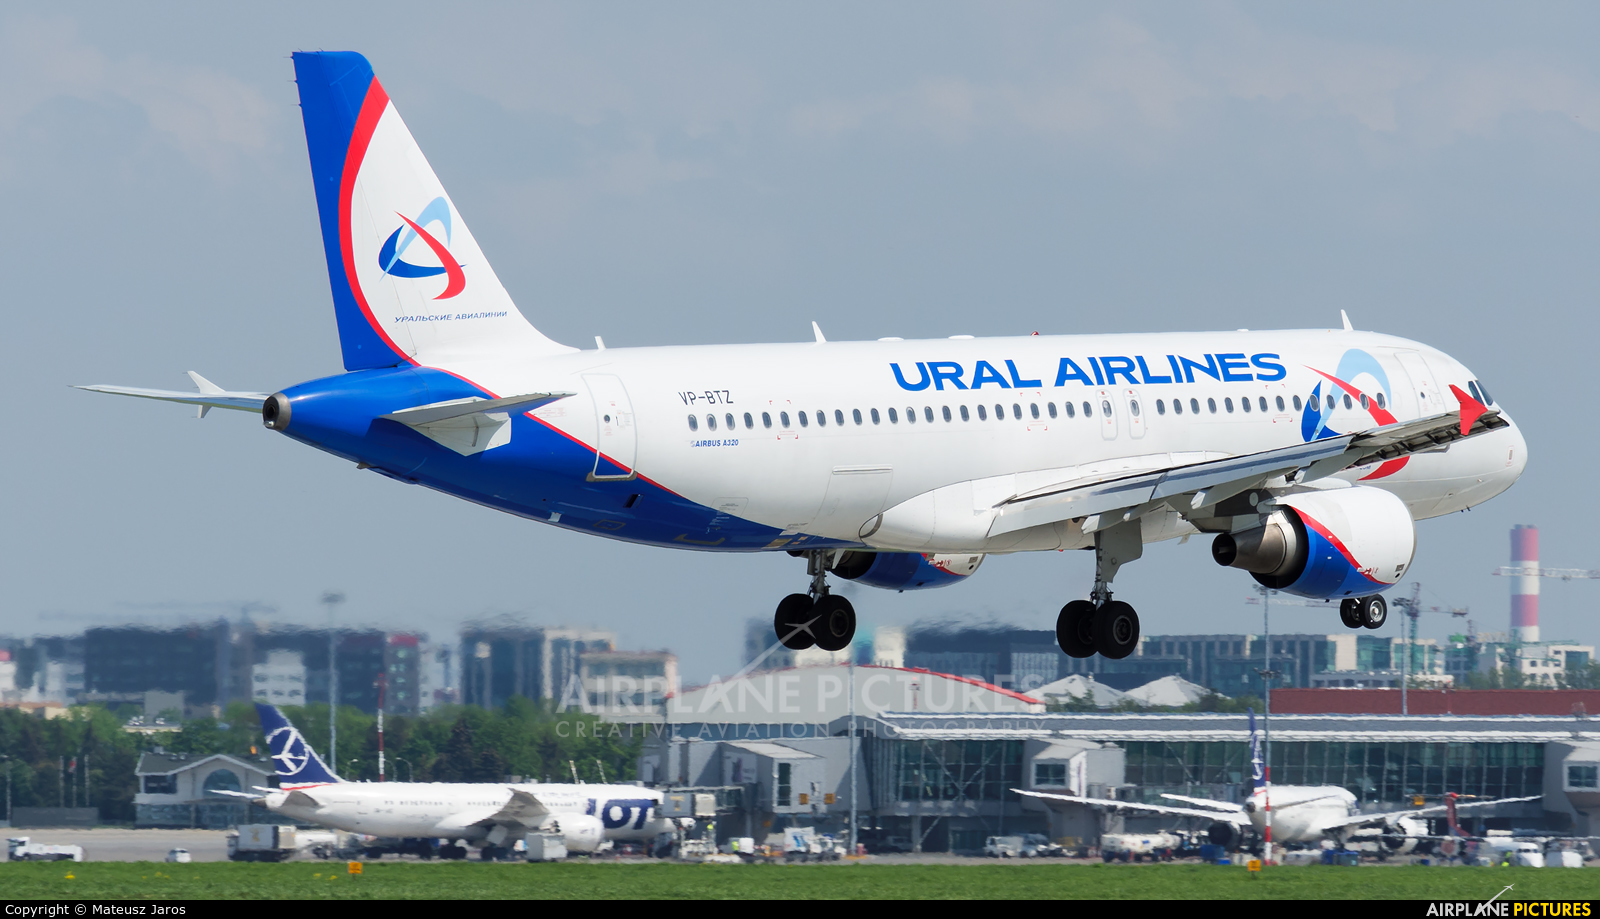 Ural Airlines VP-BTZ aircraft at Warsaw - Frederic Chopin